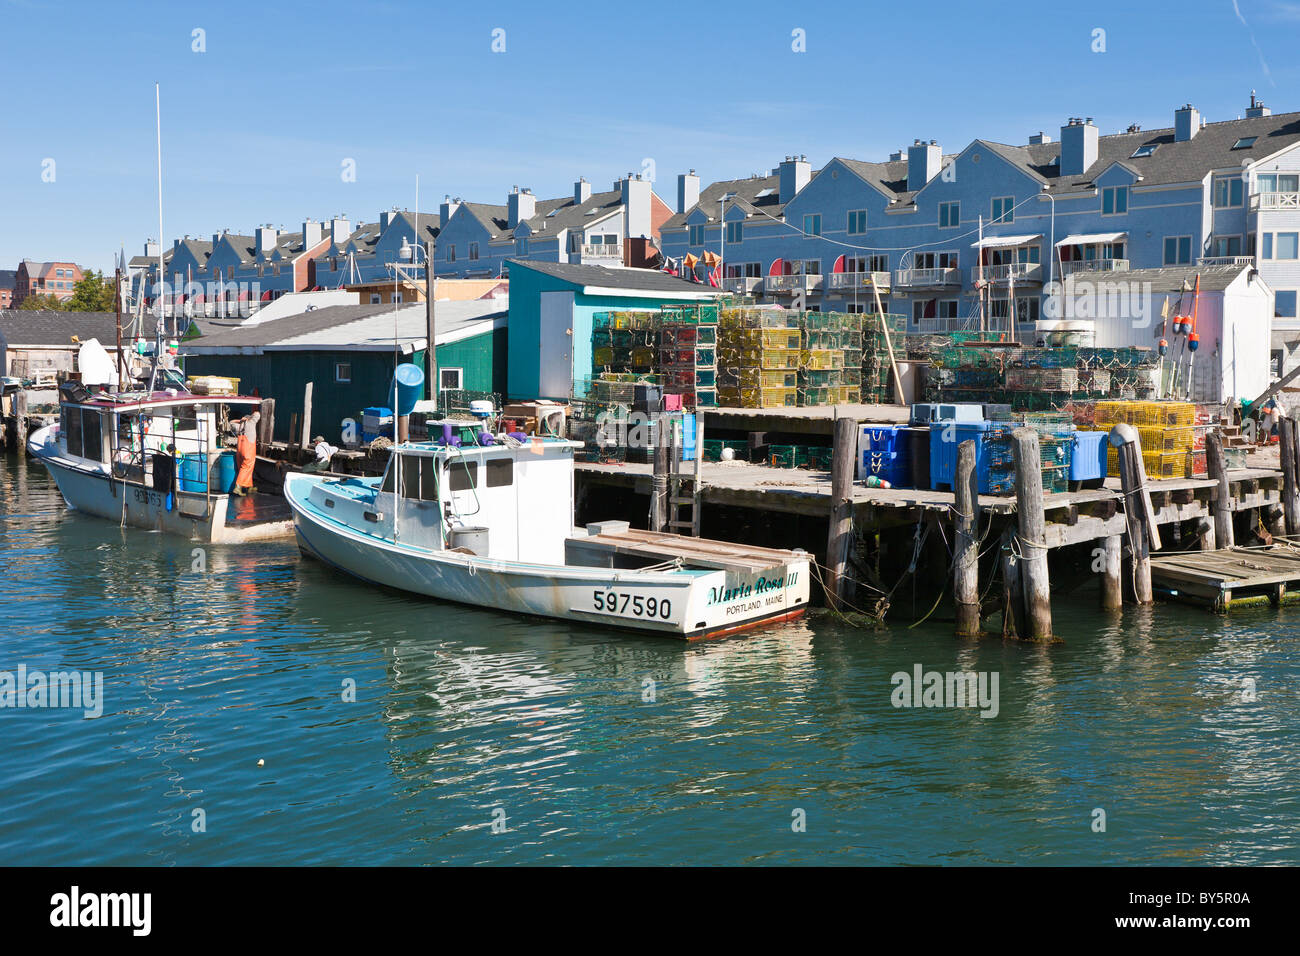 Commercial lobster fishing boats tied to pier in Portland